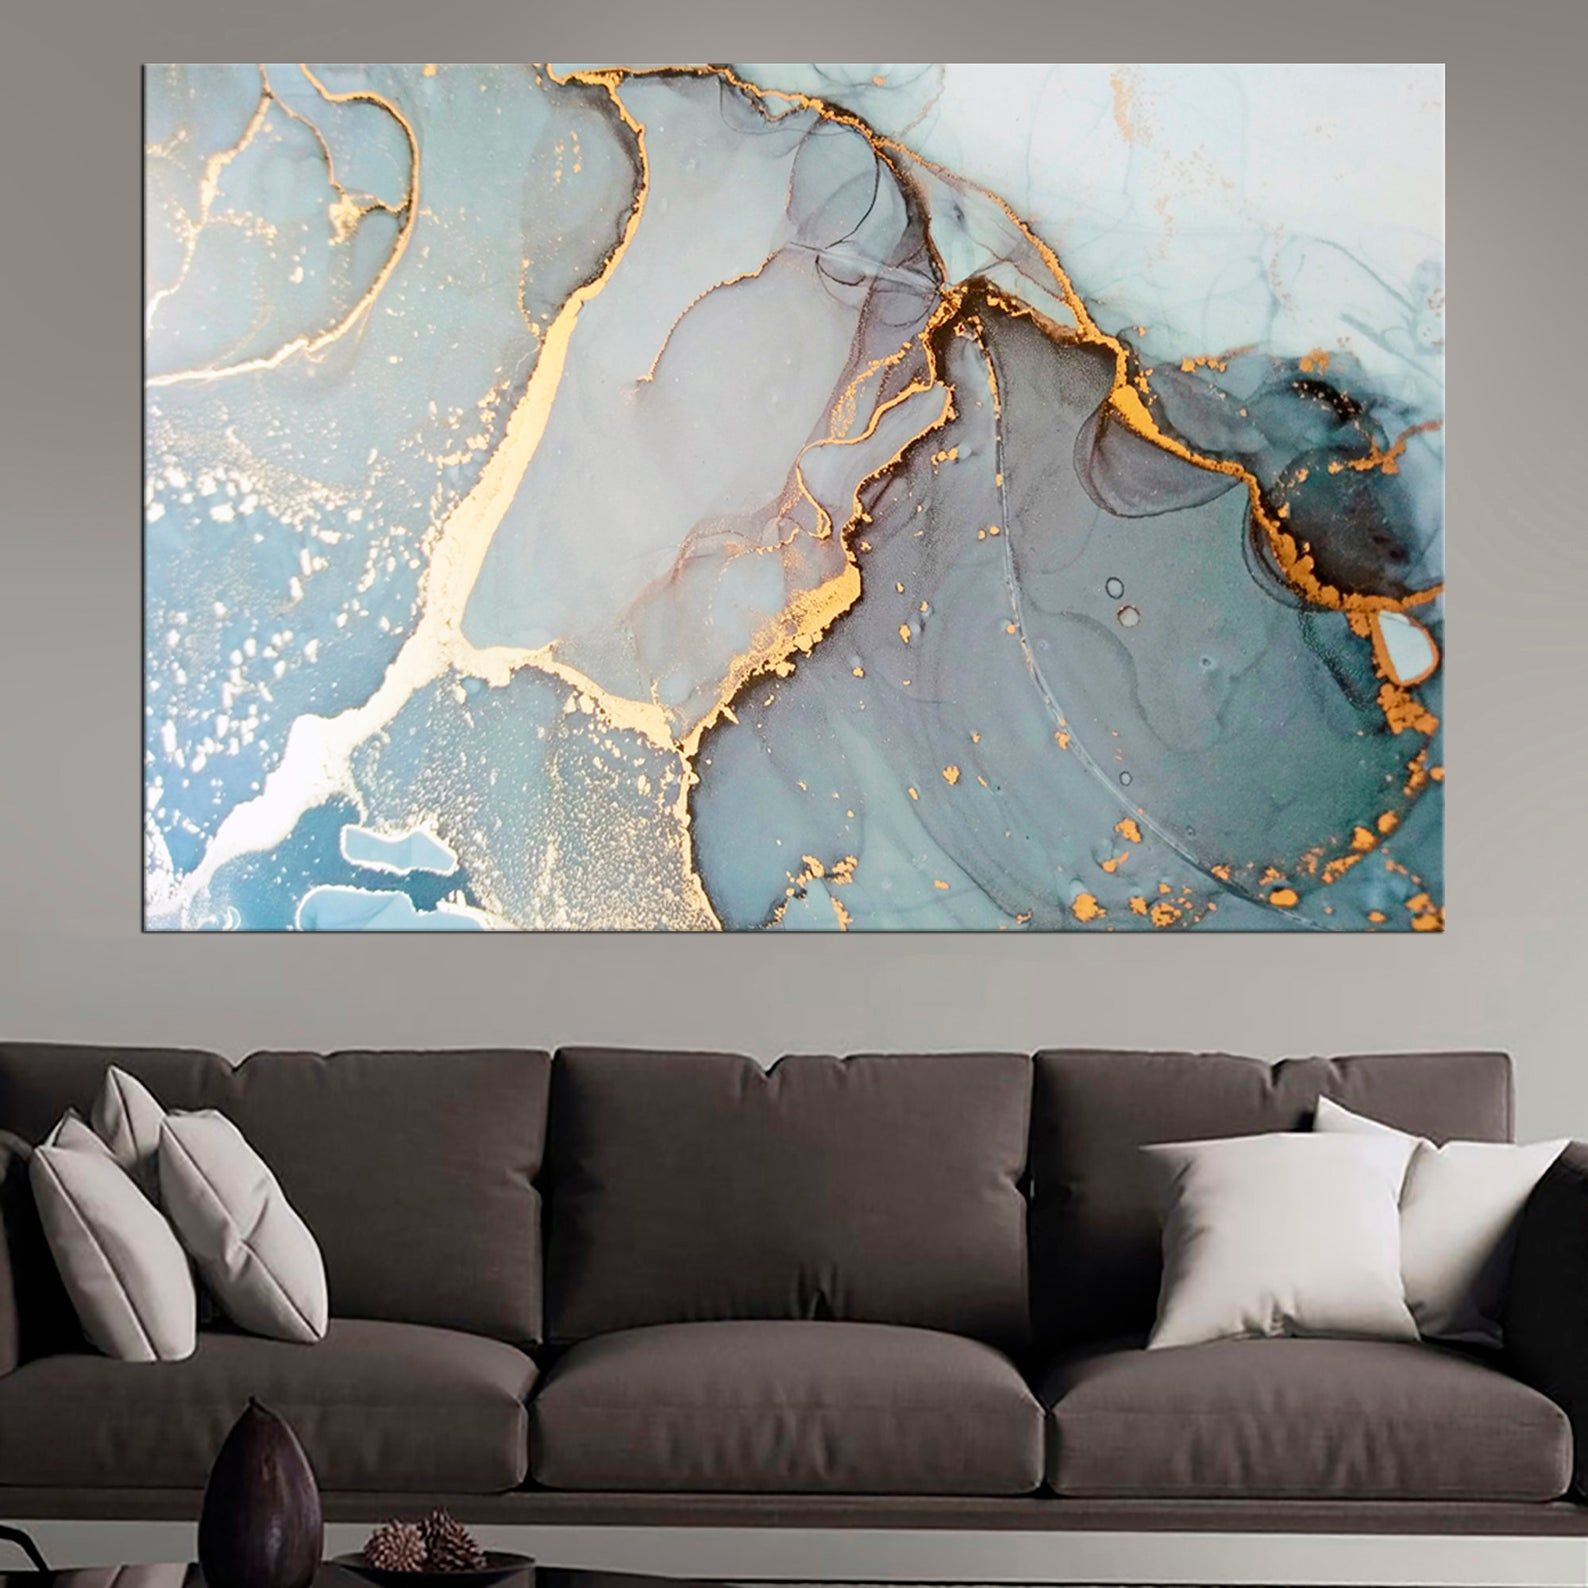 Marbling Wall Art Decorcontrast Ink Patternframed Etsy Resin Wall Art Resin Art Painting Wall Art